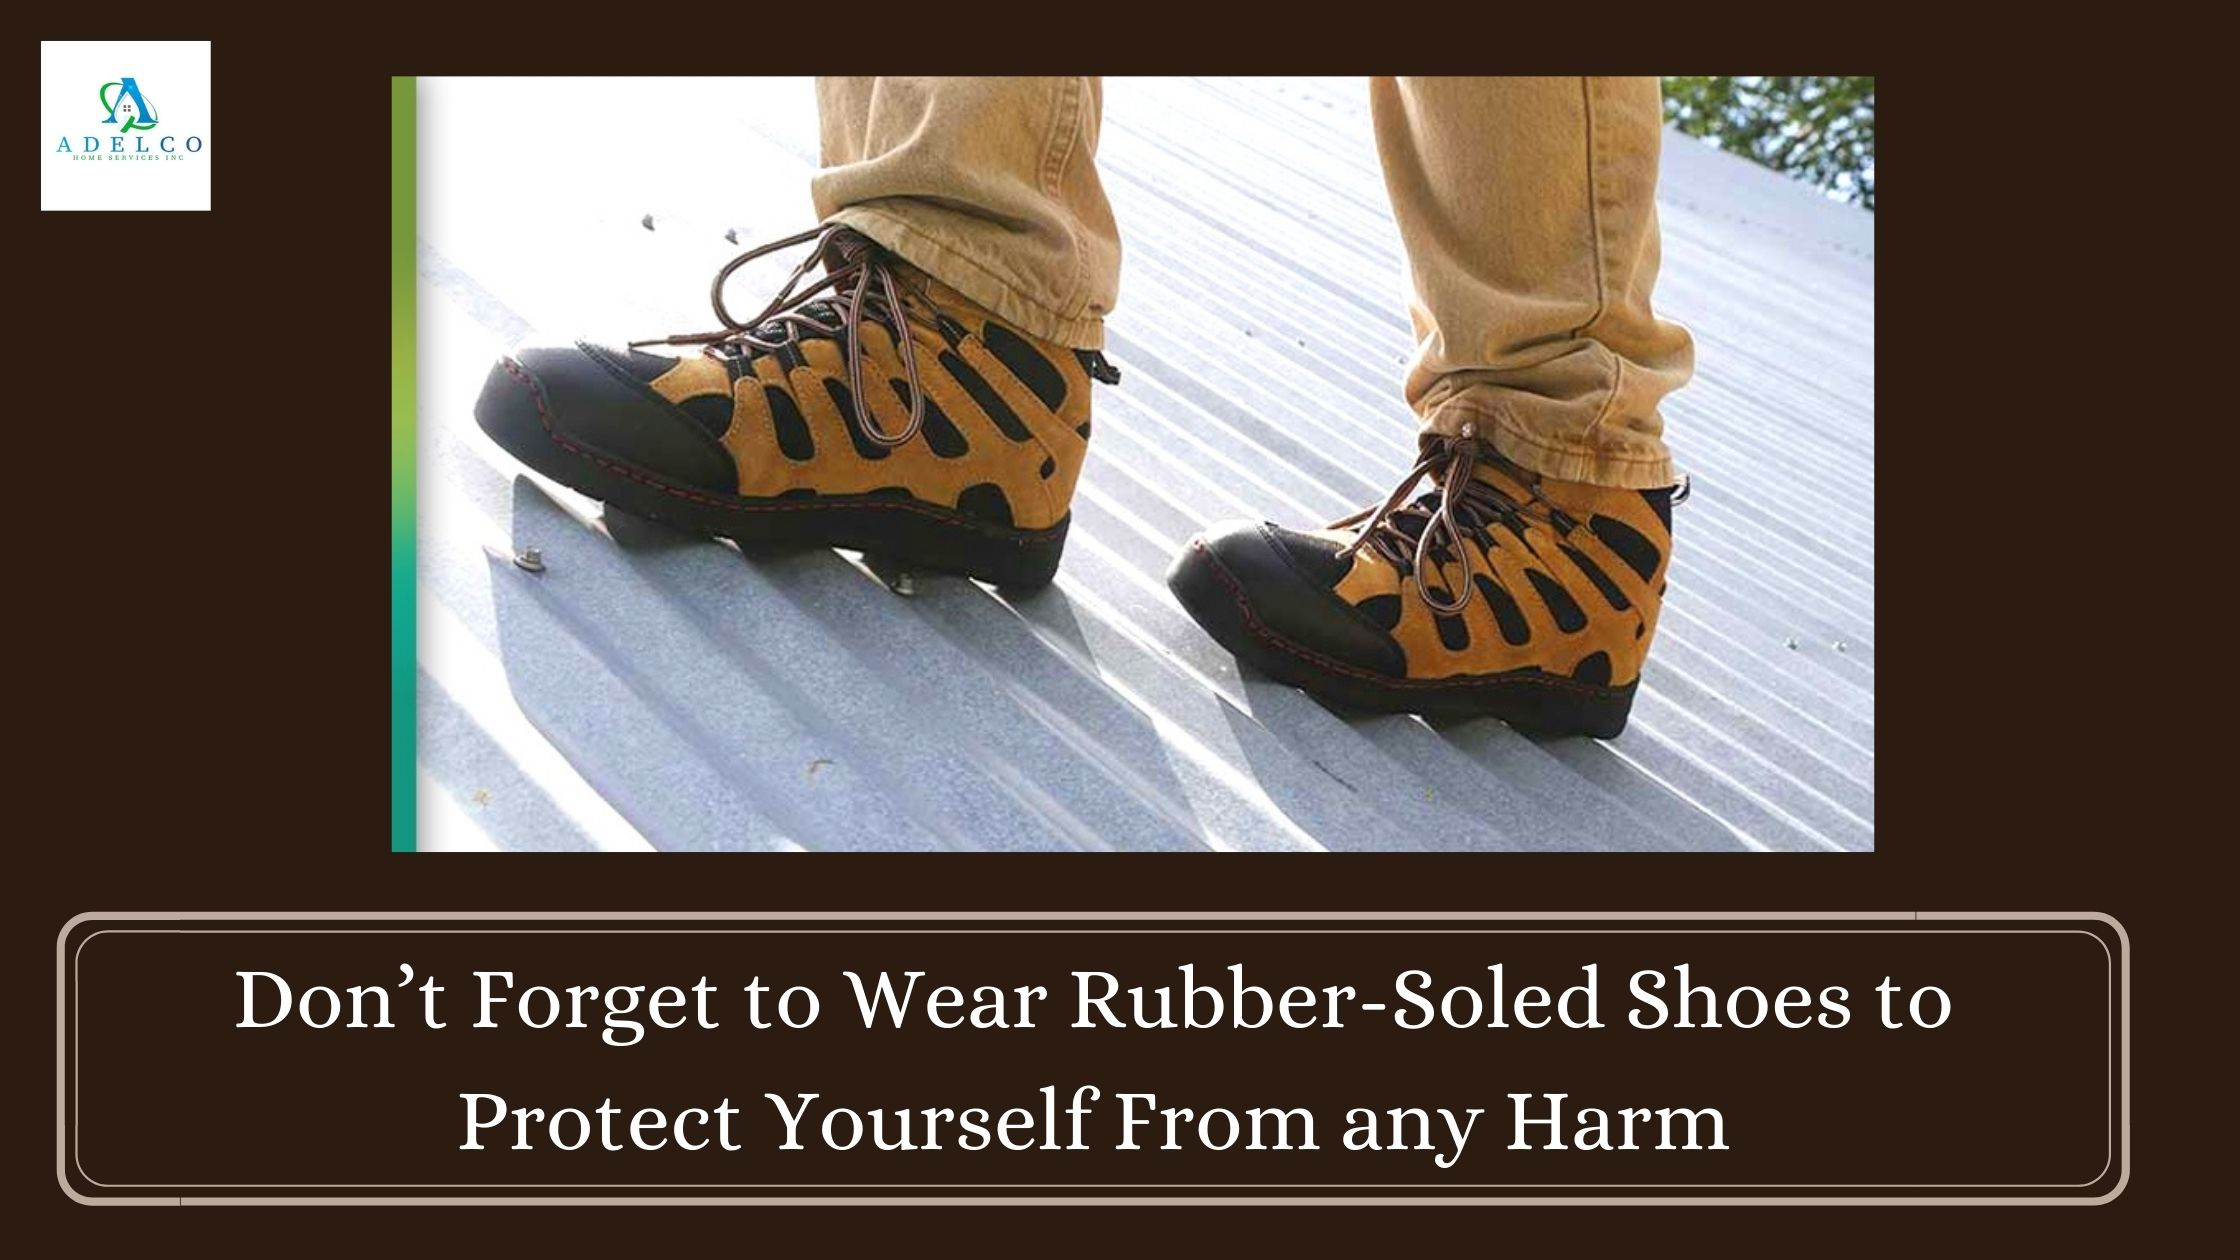 Don't Forget to Wear Rubber-Soled Shoes to Protect Your Home From Any Harm